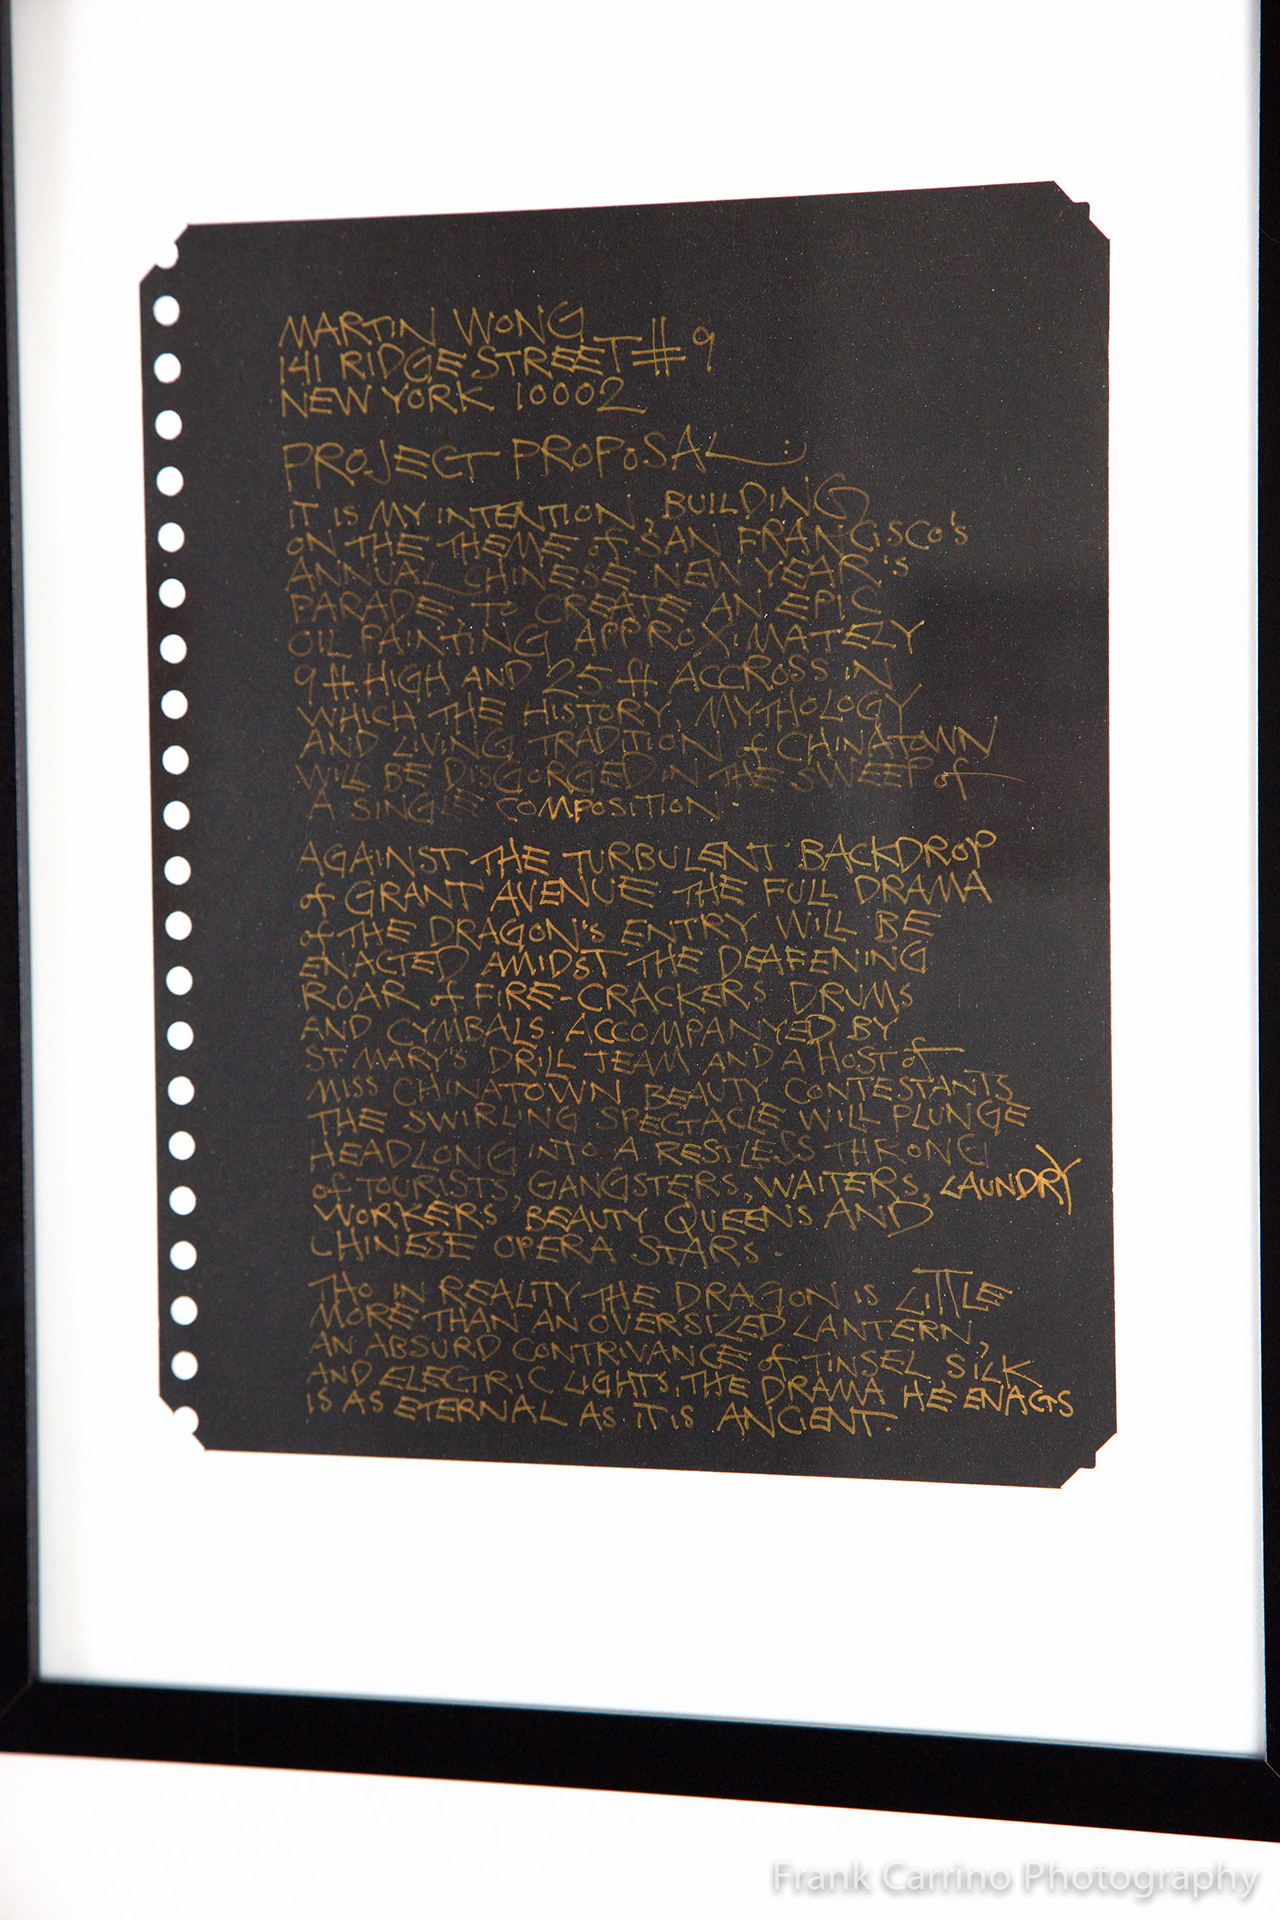 "Martin Wong, ""Project Proposal"" (c. 1980s), gold ink on black paper (courtesy New York University Fales Library & Special Collections Martin Wong Papers 1982-1999, New York) (click to enlarge)"